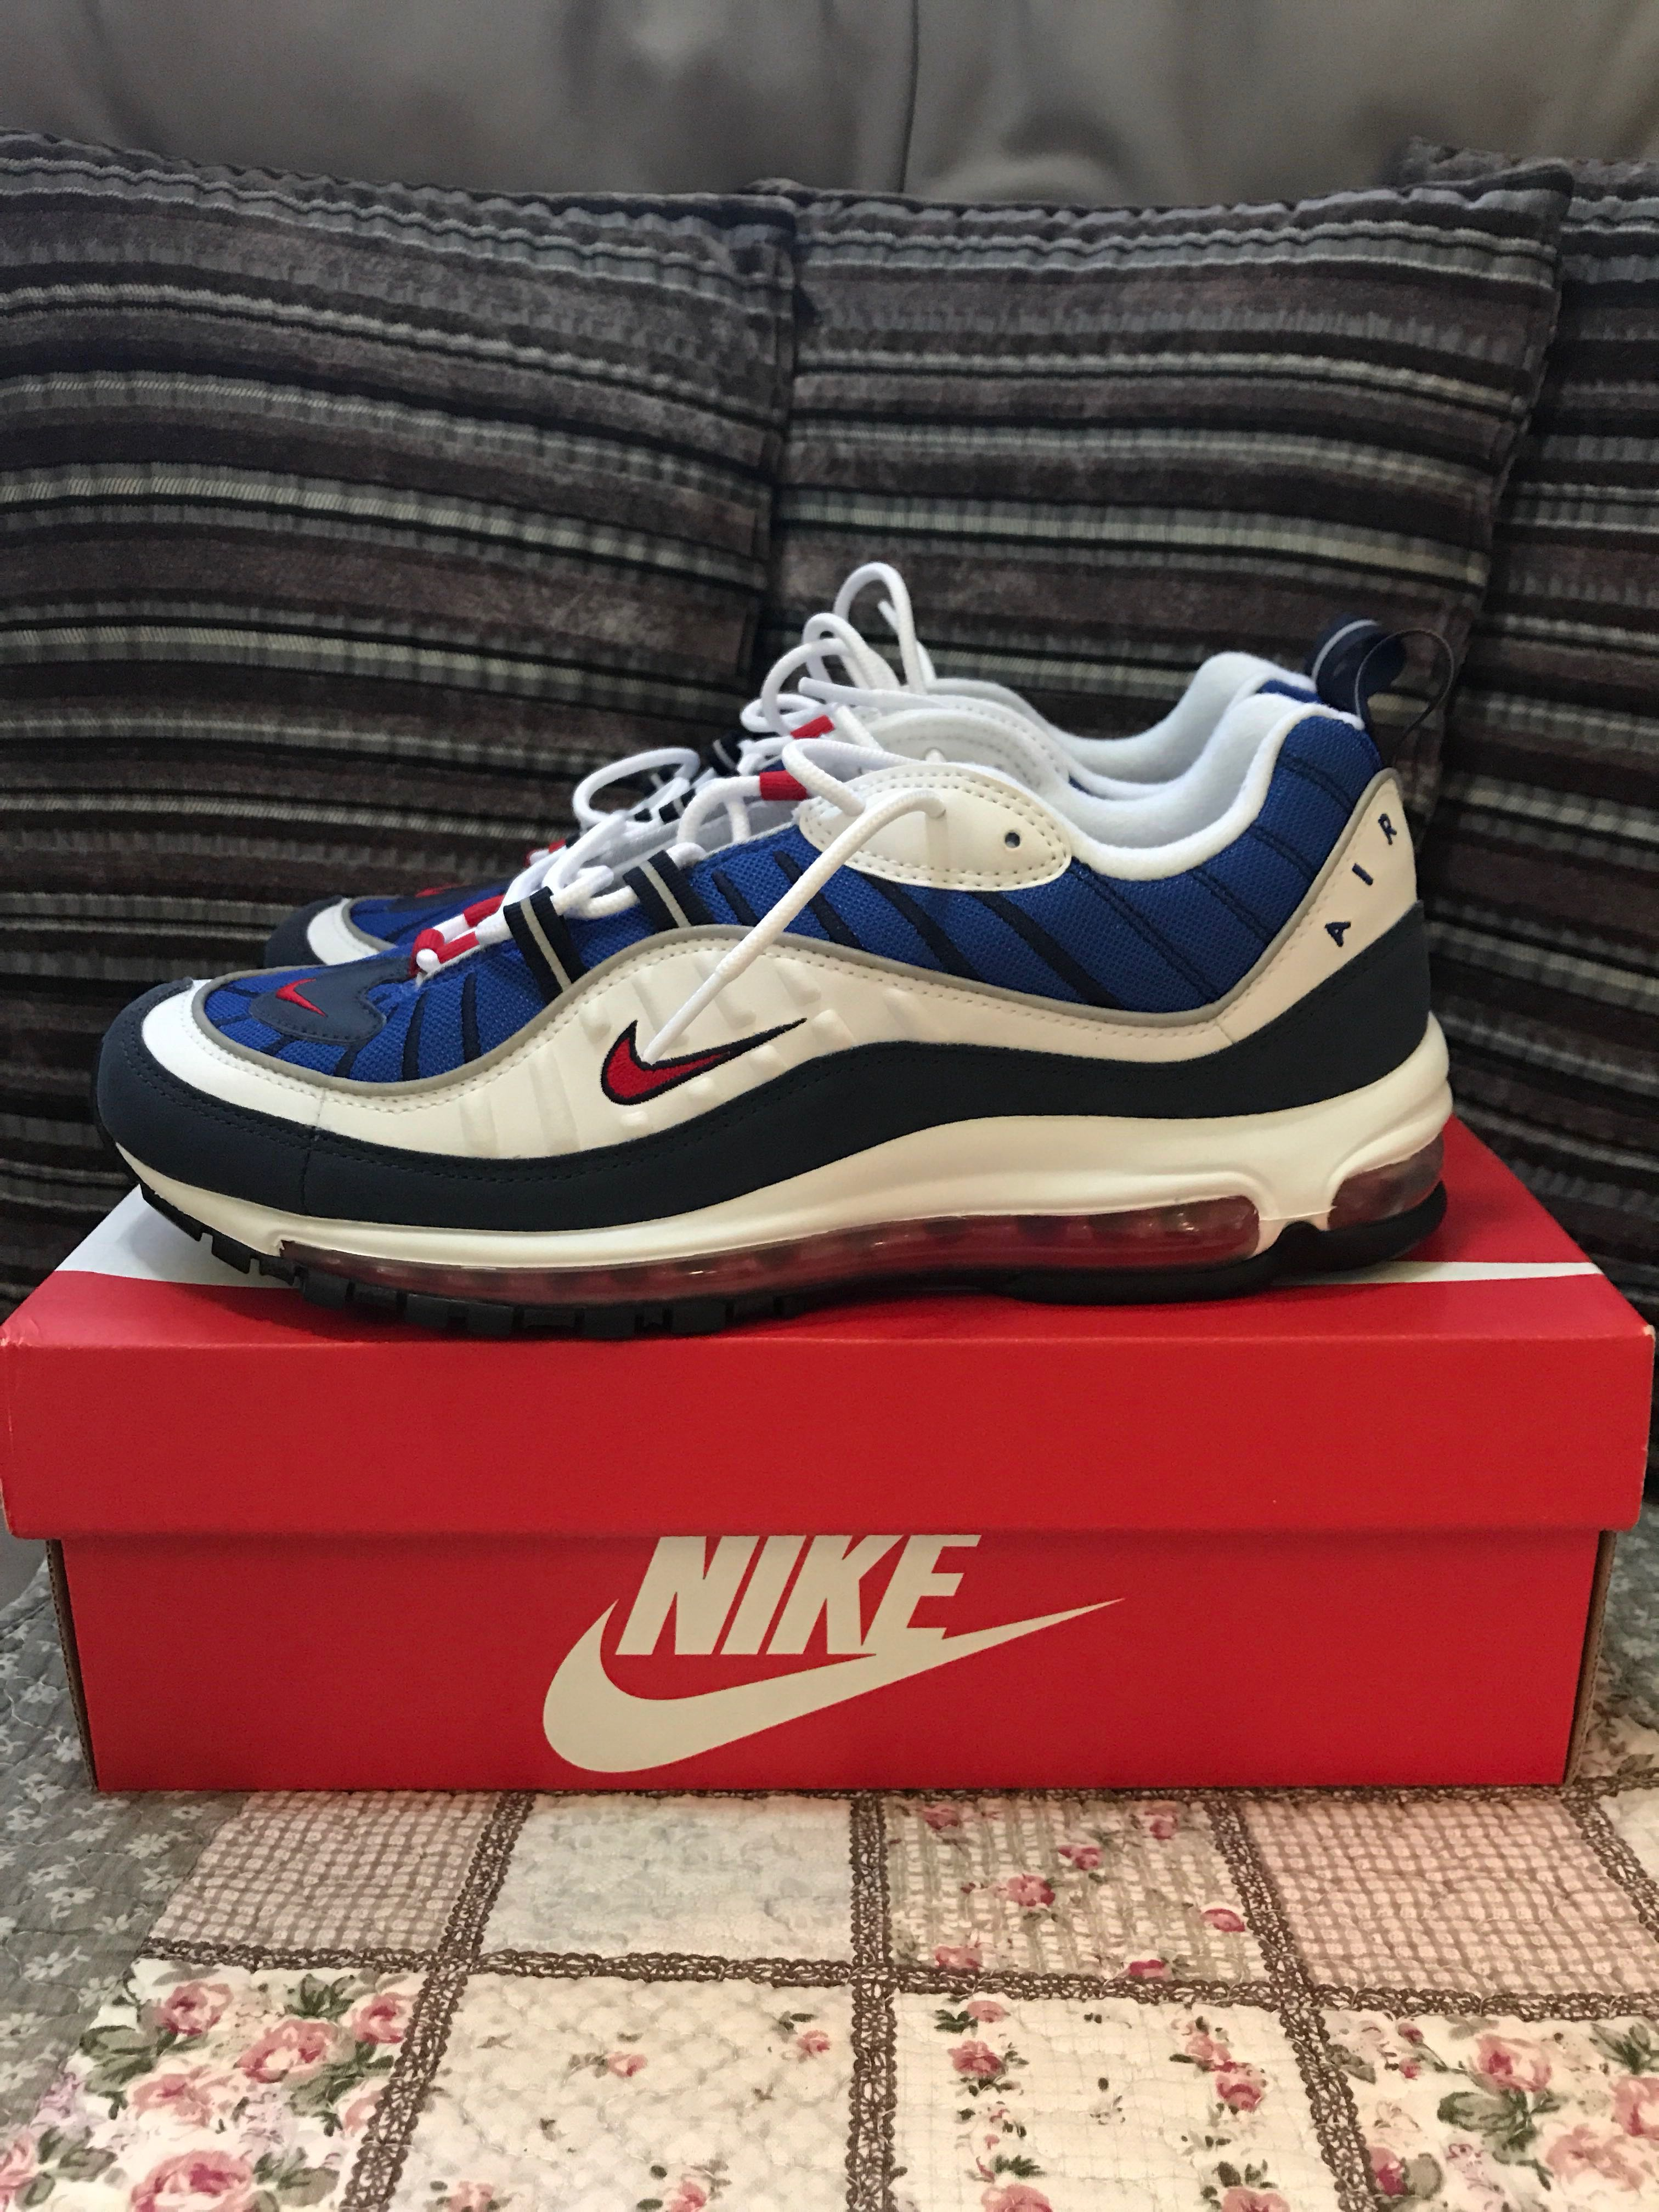 fa784e732c Nike Air Max 97 Gundam, Men's Fashion, Footwear, Sneakers on Carousell